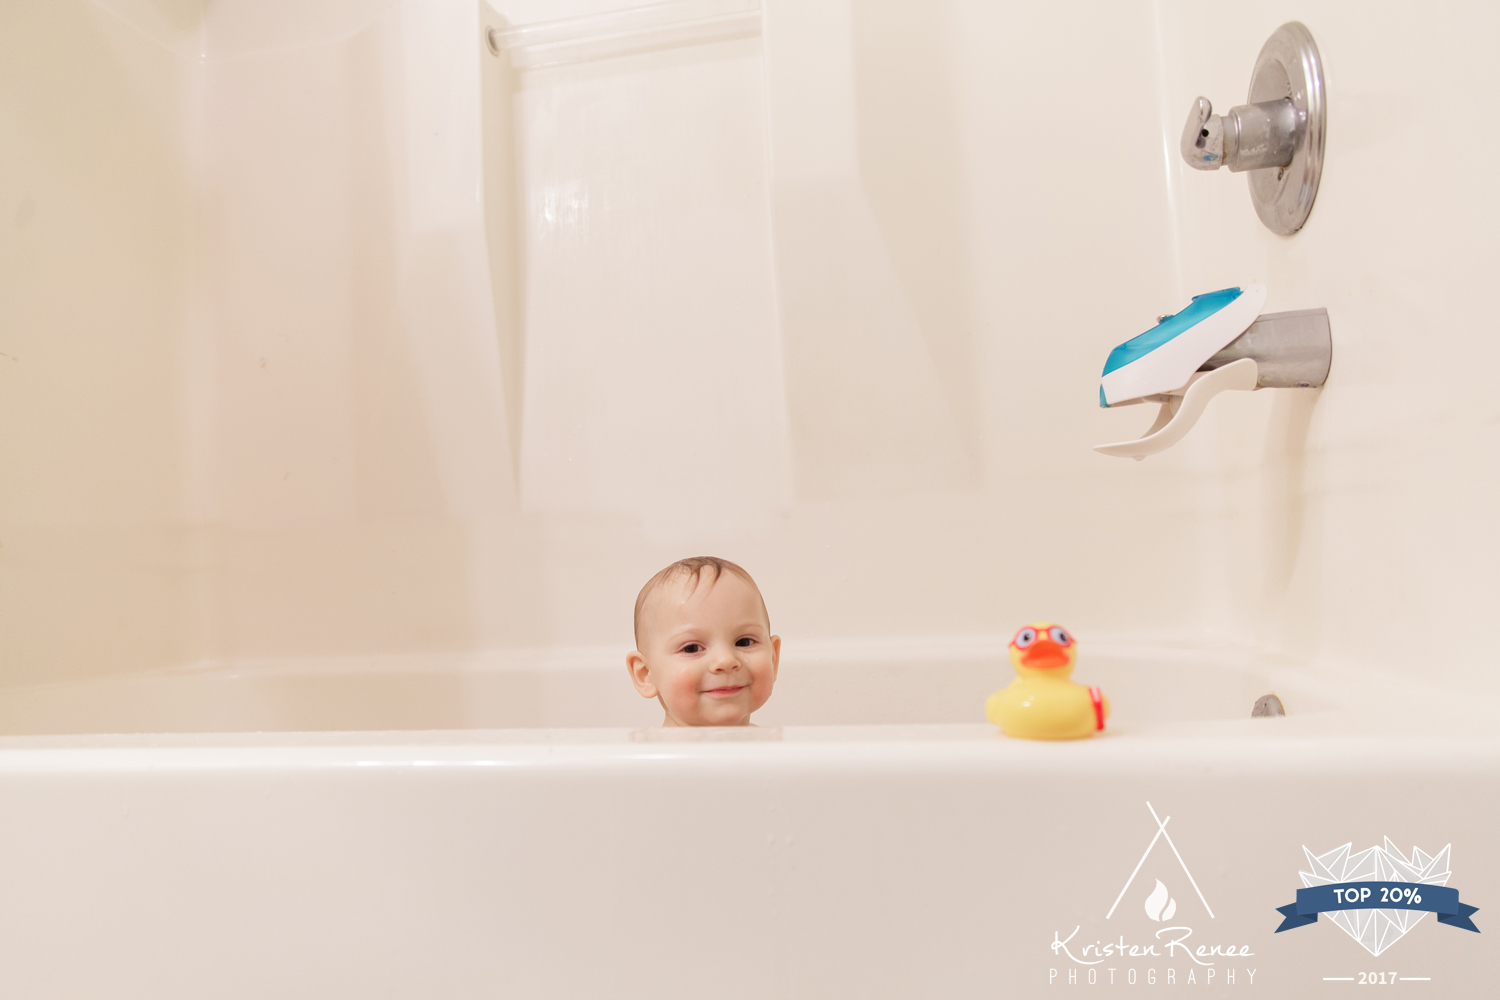 This image of my own little cutie pie scored in the top 20% for its category - Lifestyle!